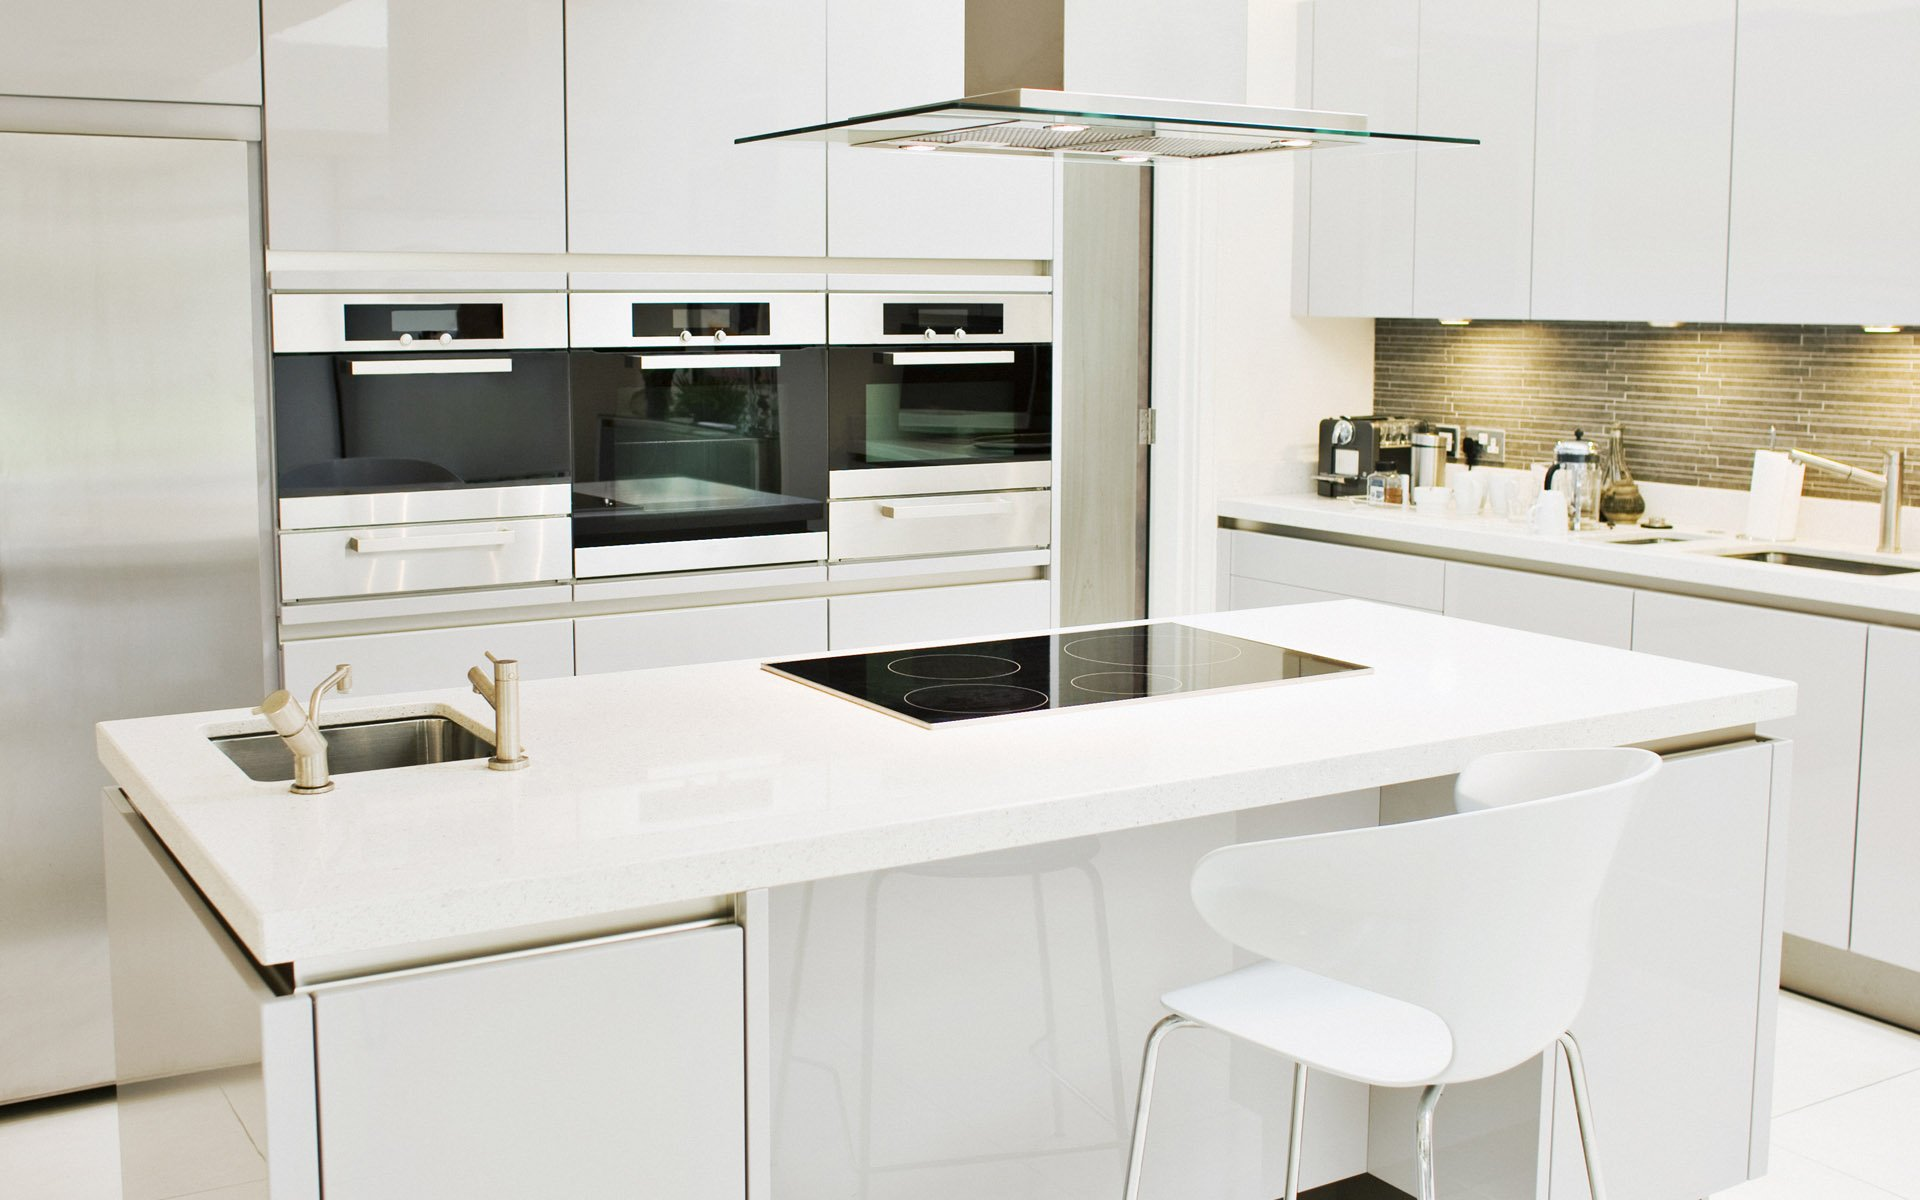 White High Gloss Kitchens Houzz. houzz white kitchens high gloss ...